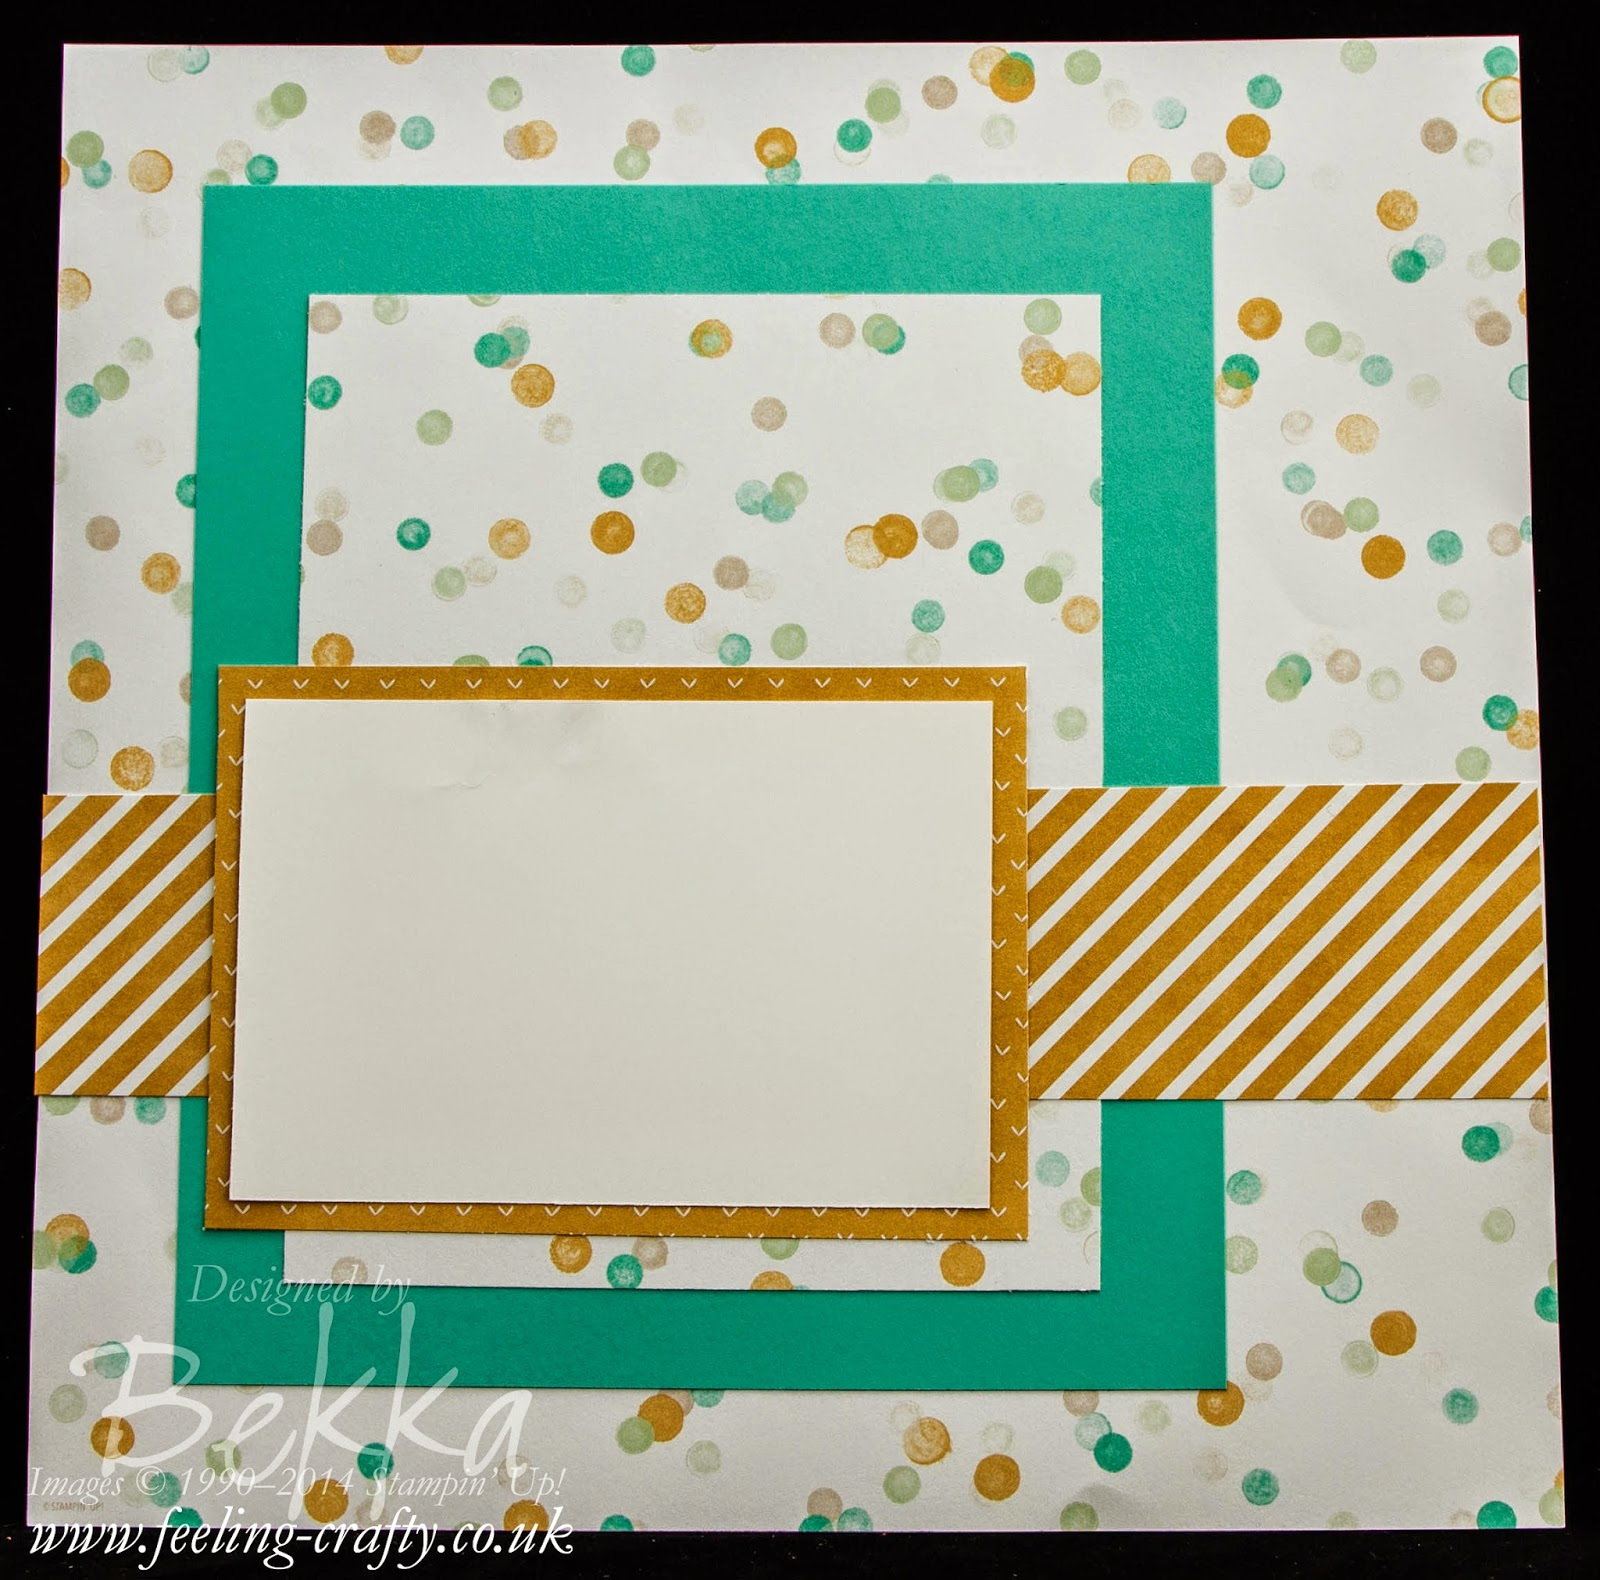 A Spotty Scrapbook Startpoint Page by Stampin' Up! UK Independent Demonstrator Bekka